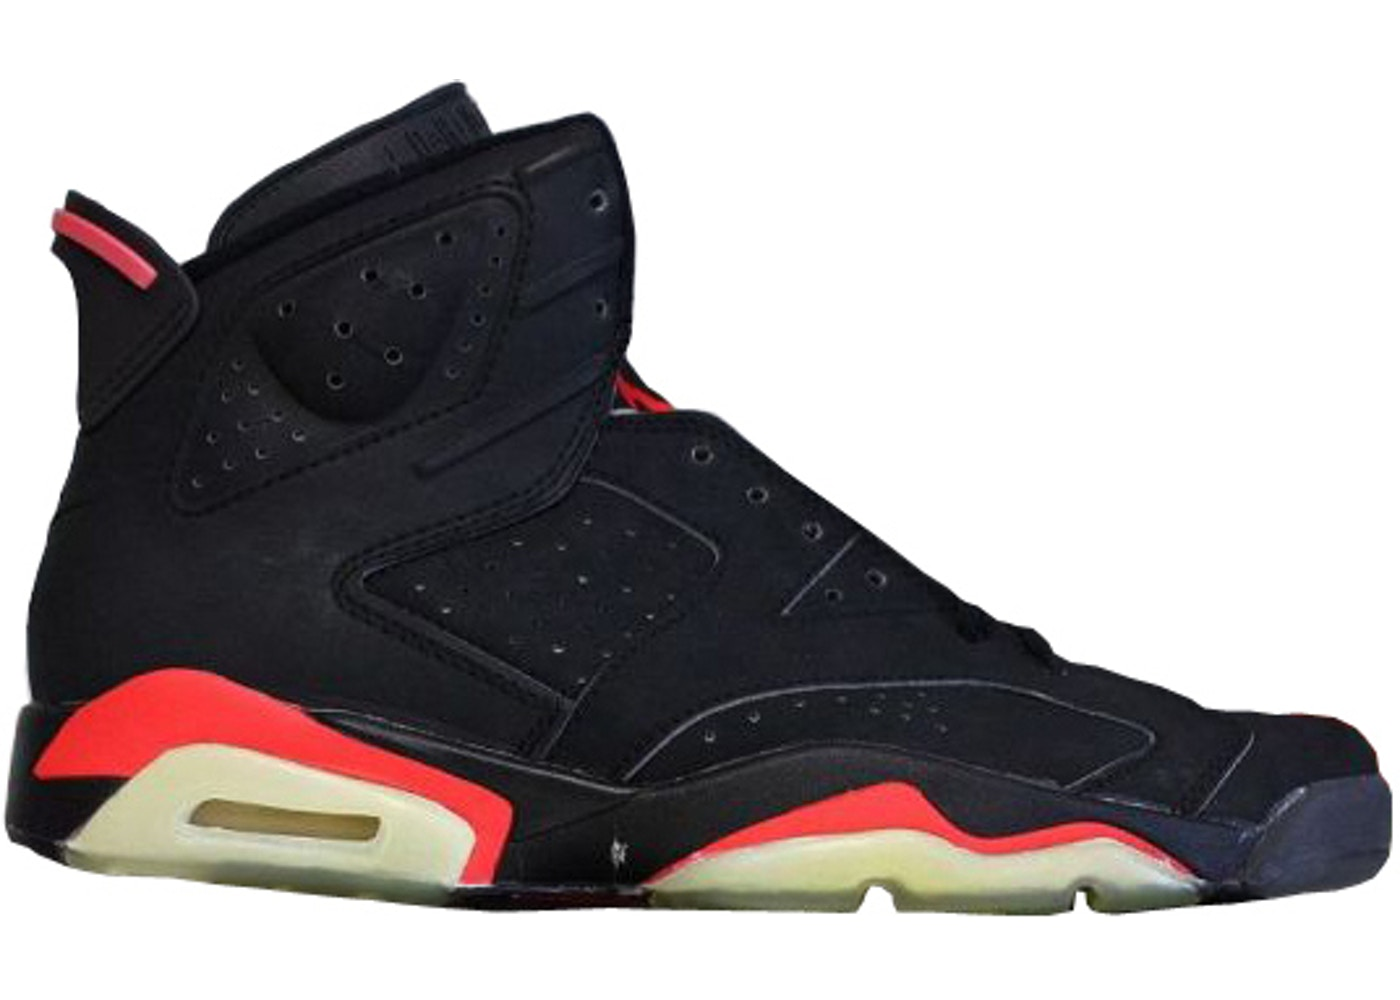 best service 4b9cd 84843 Jordan 6 OG Infrared Black (1991) - 4391